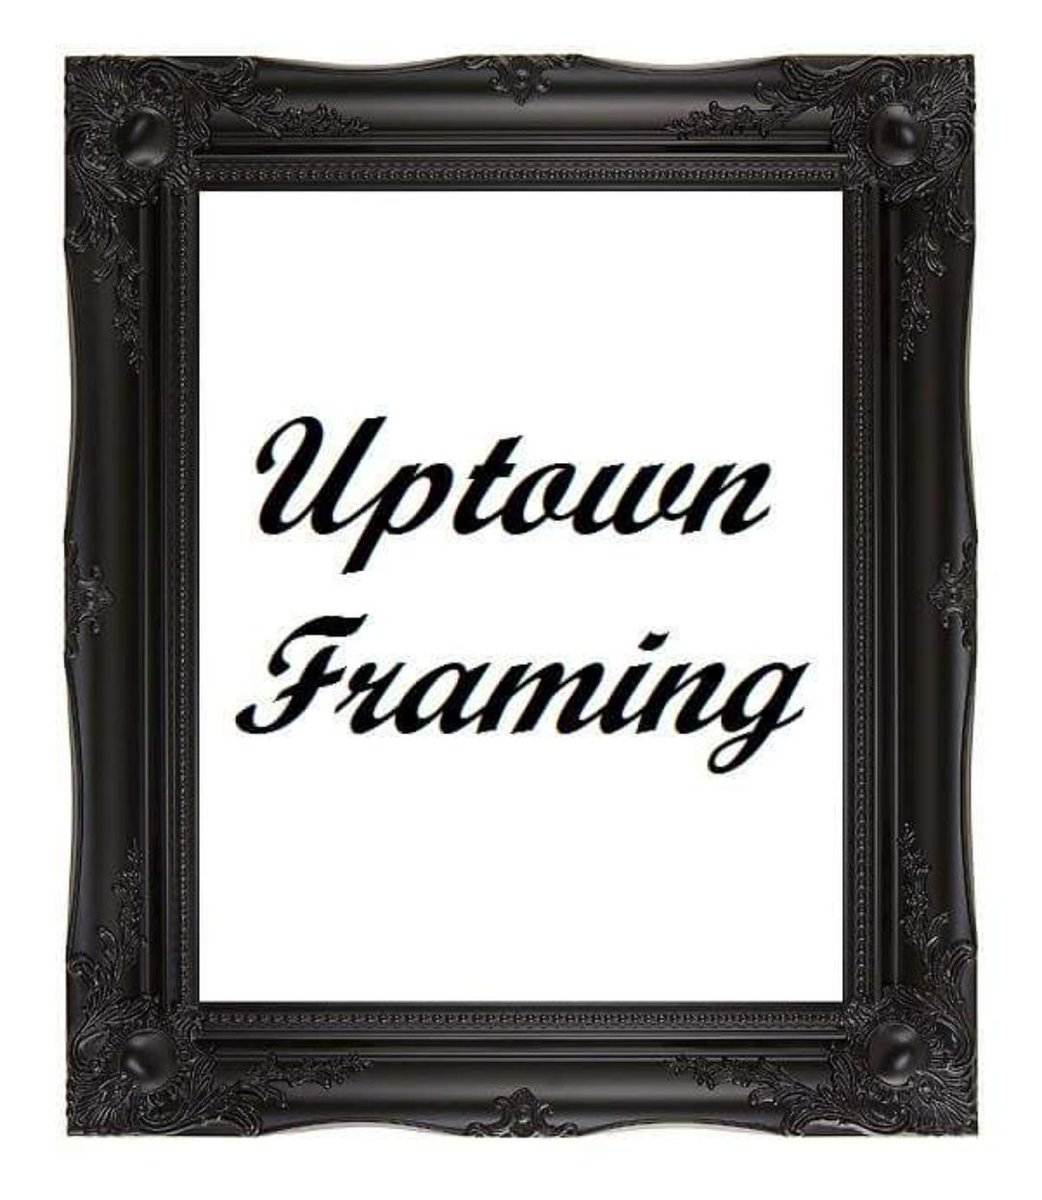 Uptown Framing on Twitter: \